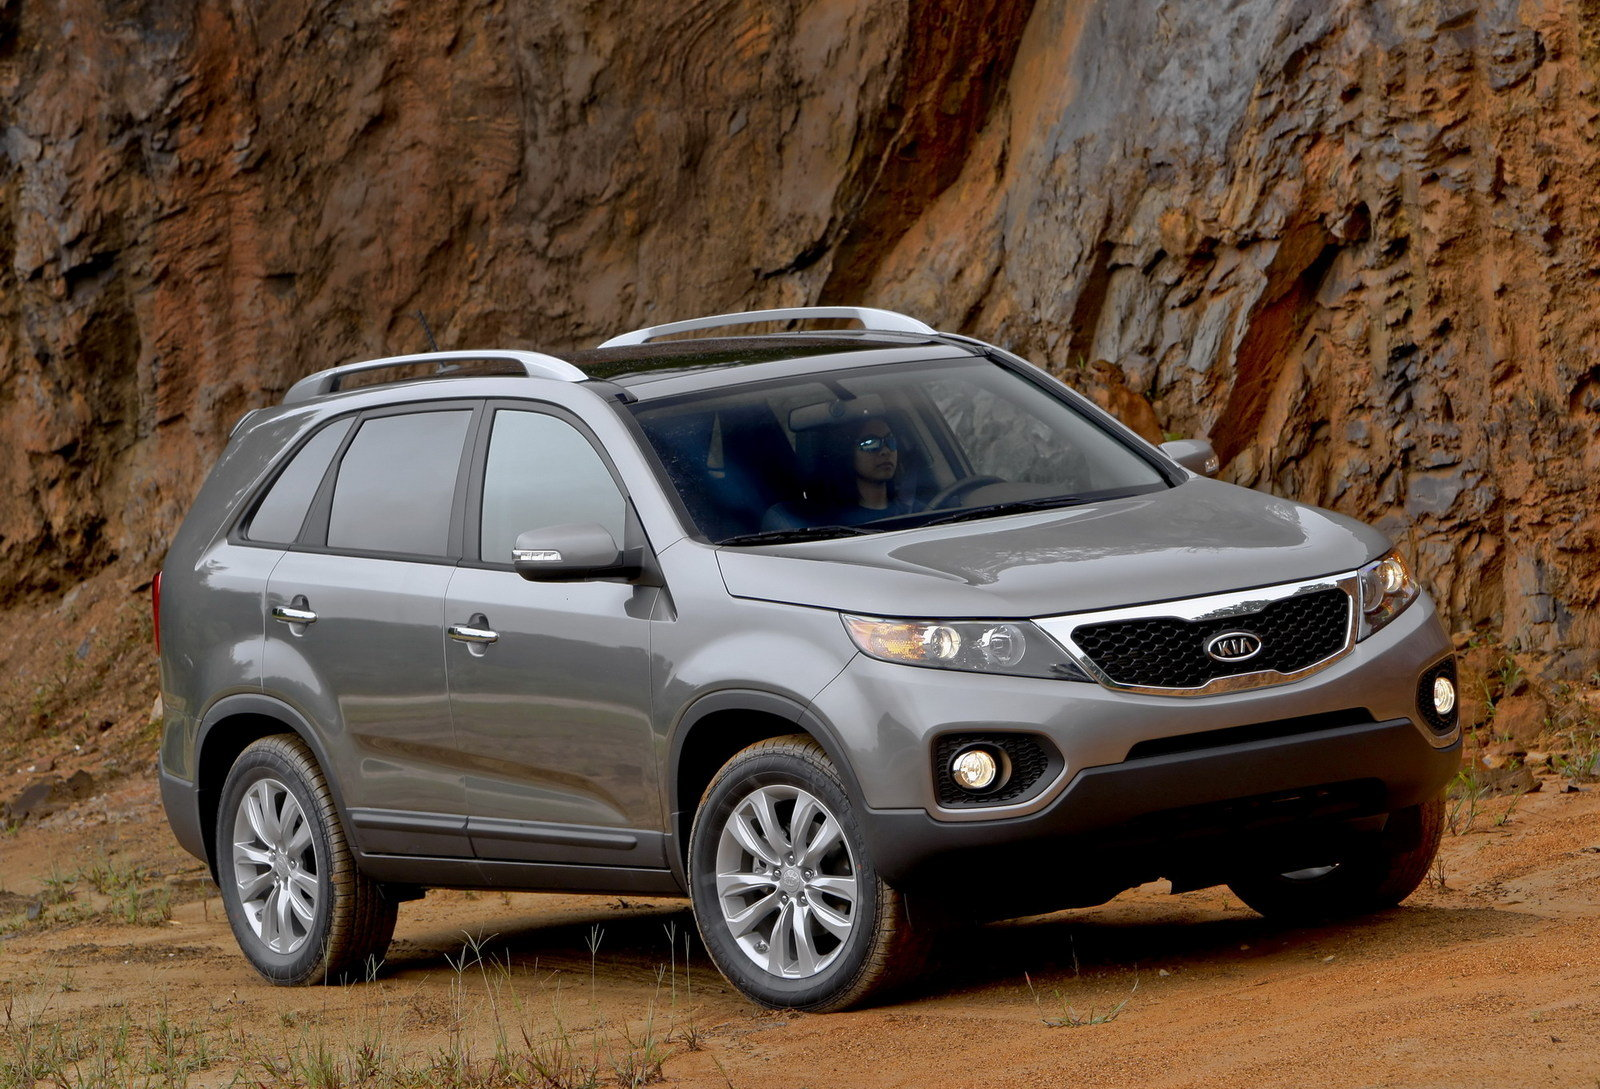 2011 kia sorento review gallery top speed. Black Bedroom Furniture Sets. Home Design Ideas